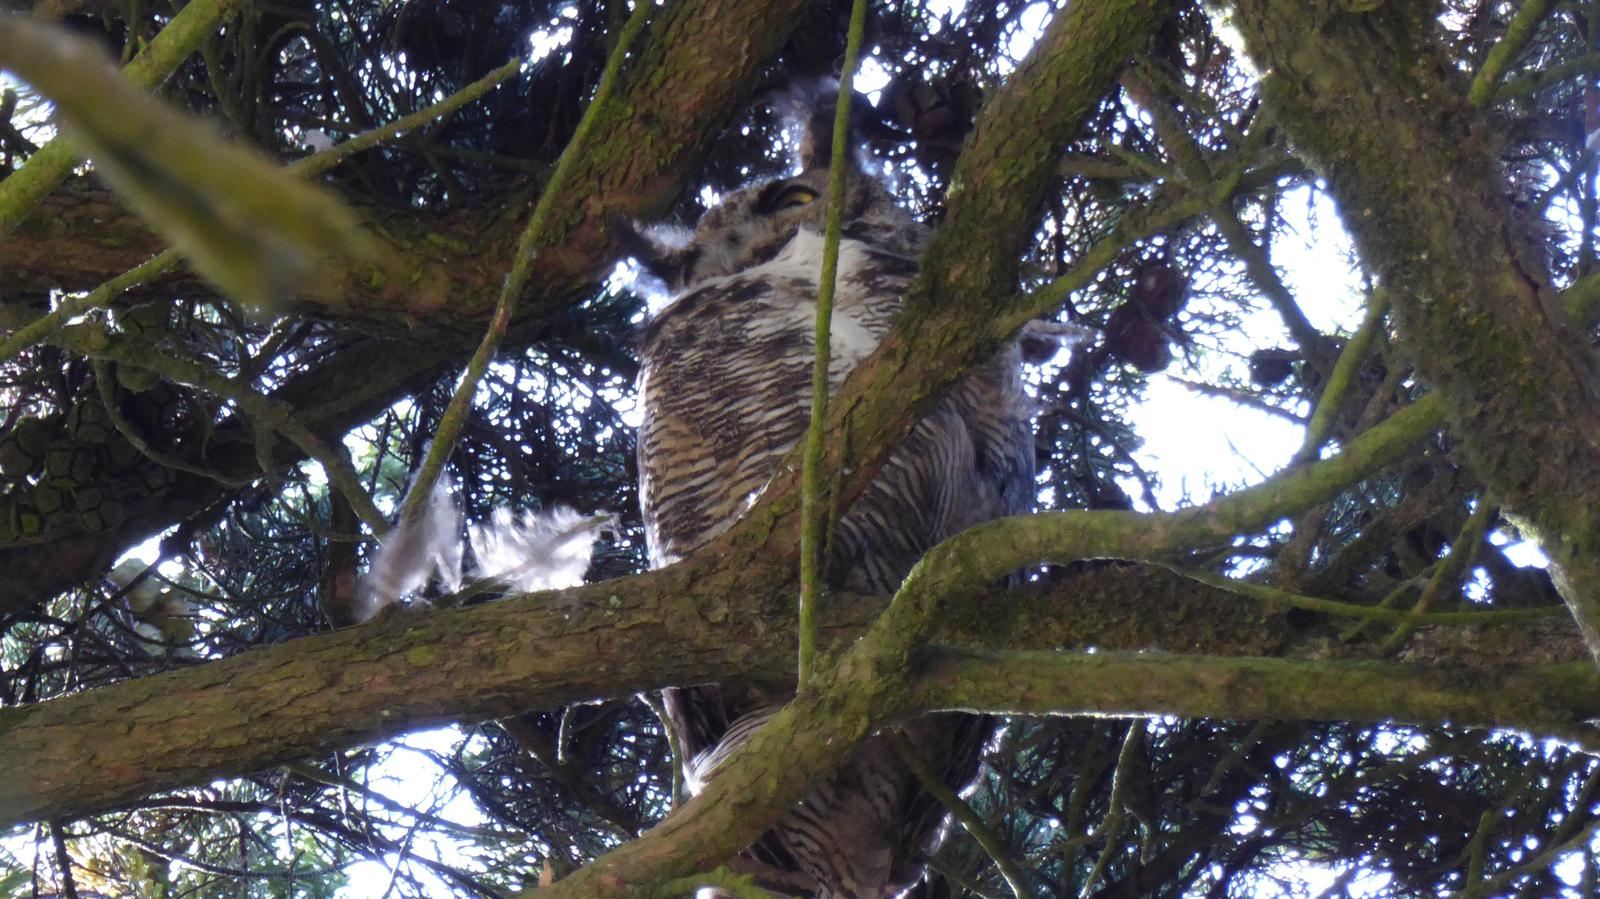 Great Horned Owl Photo by Daliel Leite